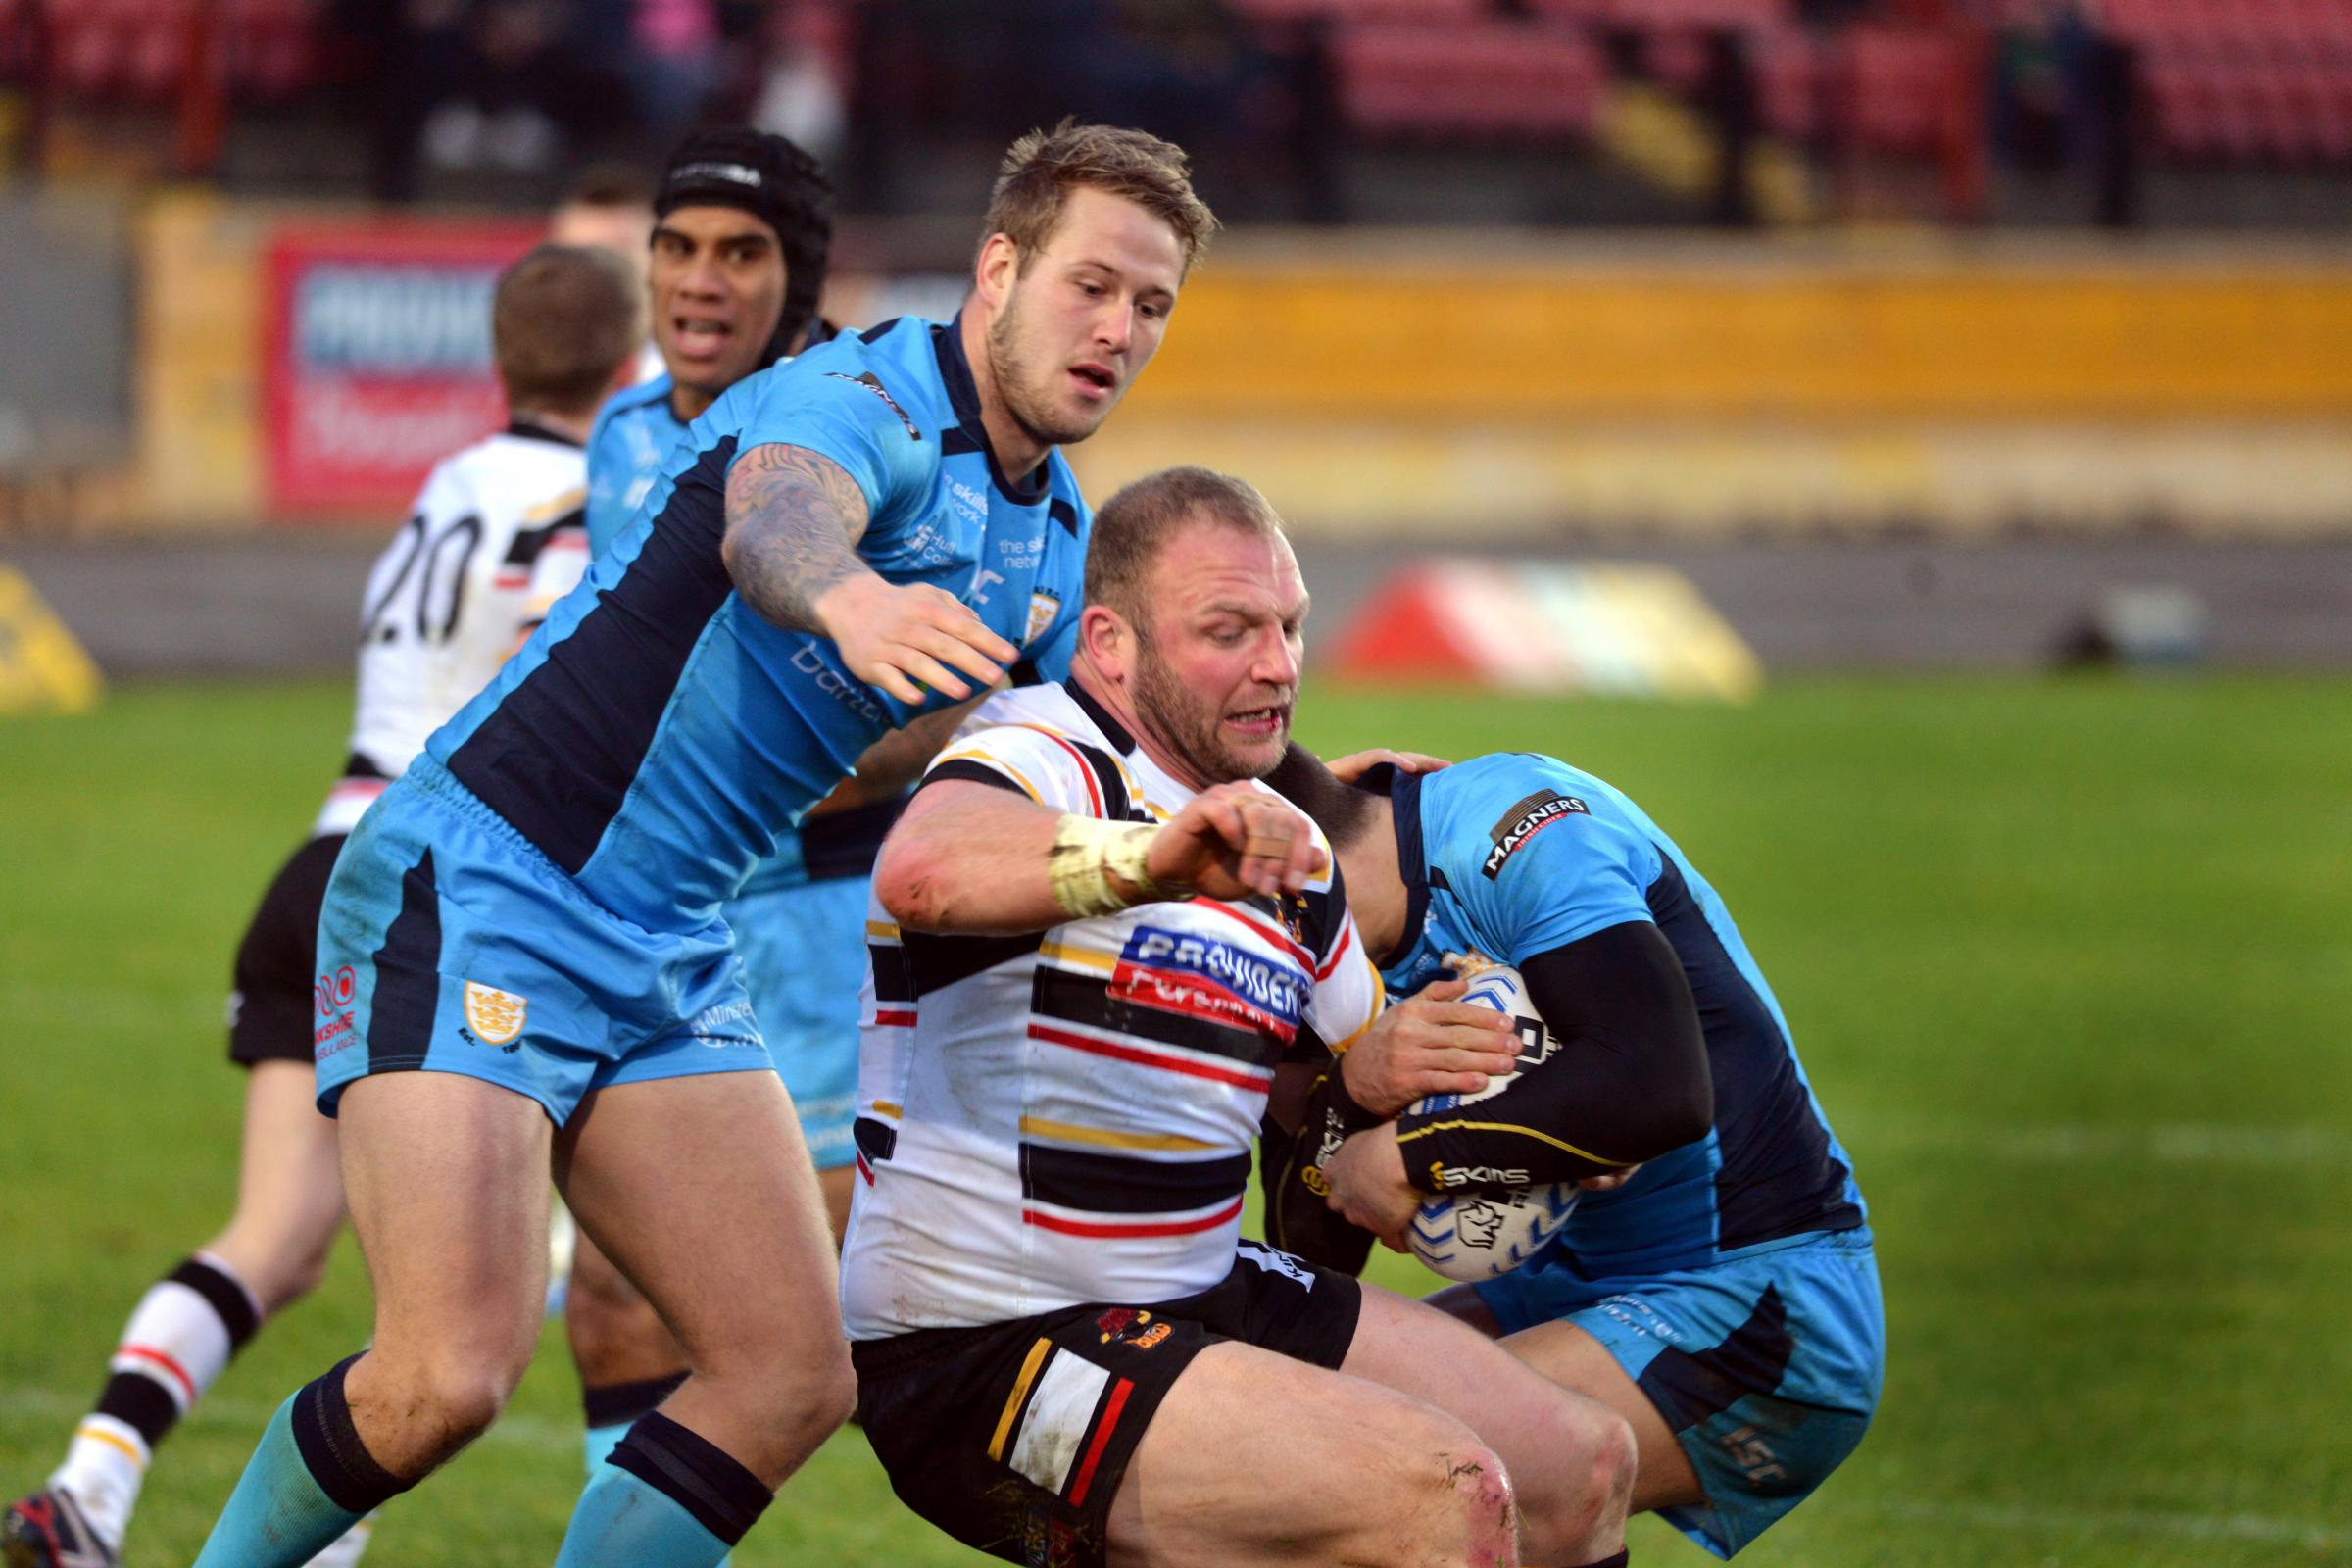 PLAYING ON: Garreth Carvell, pictured during his first game for Bulls against Hull, wants to extend his career as long as possible